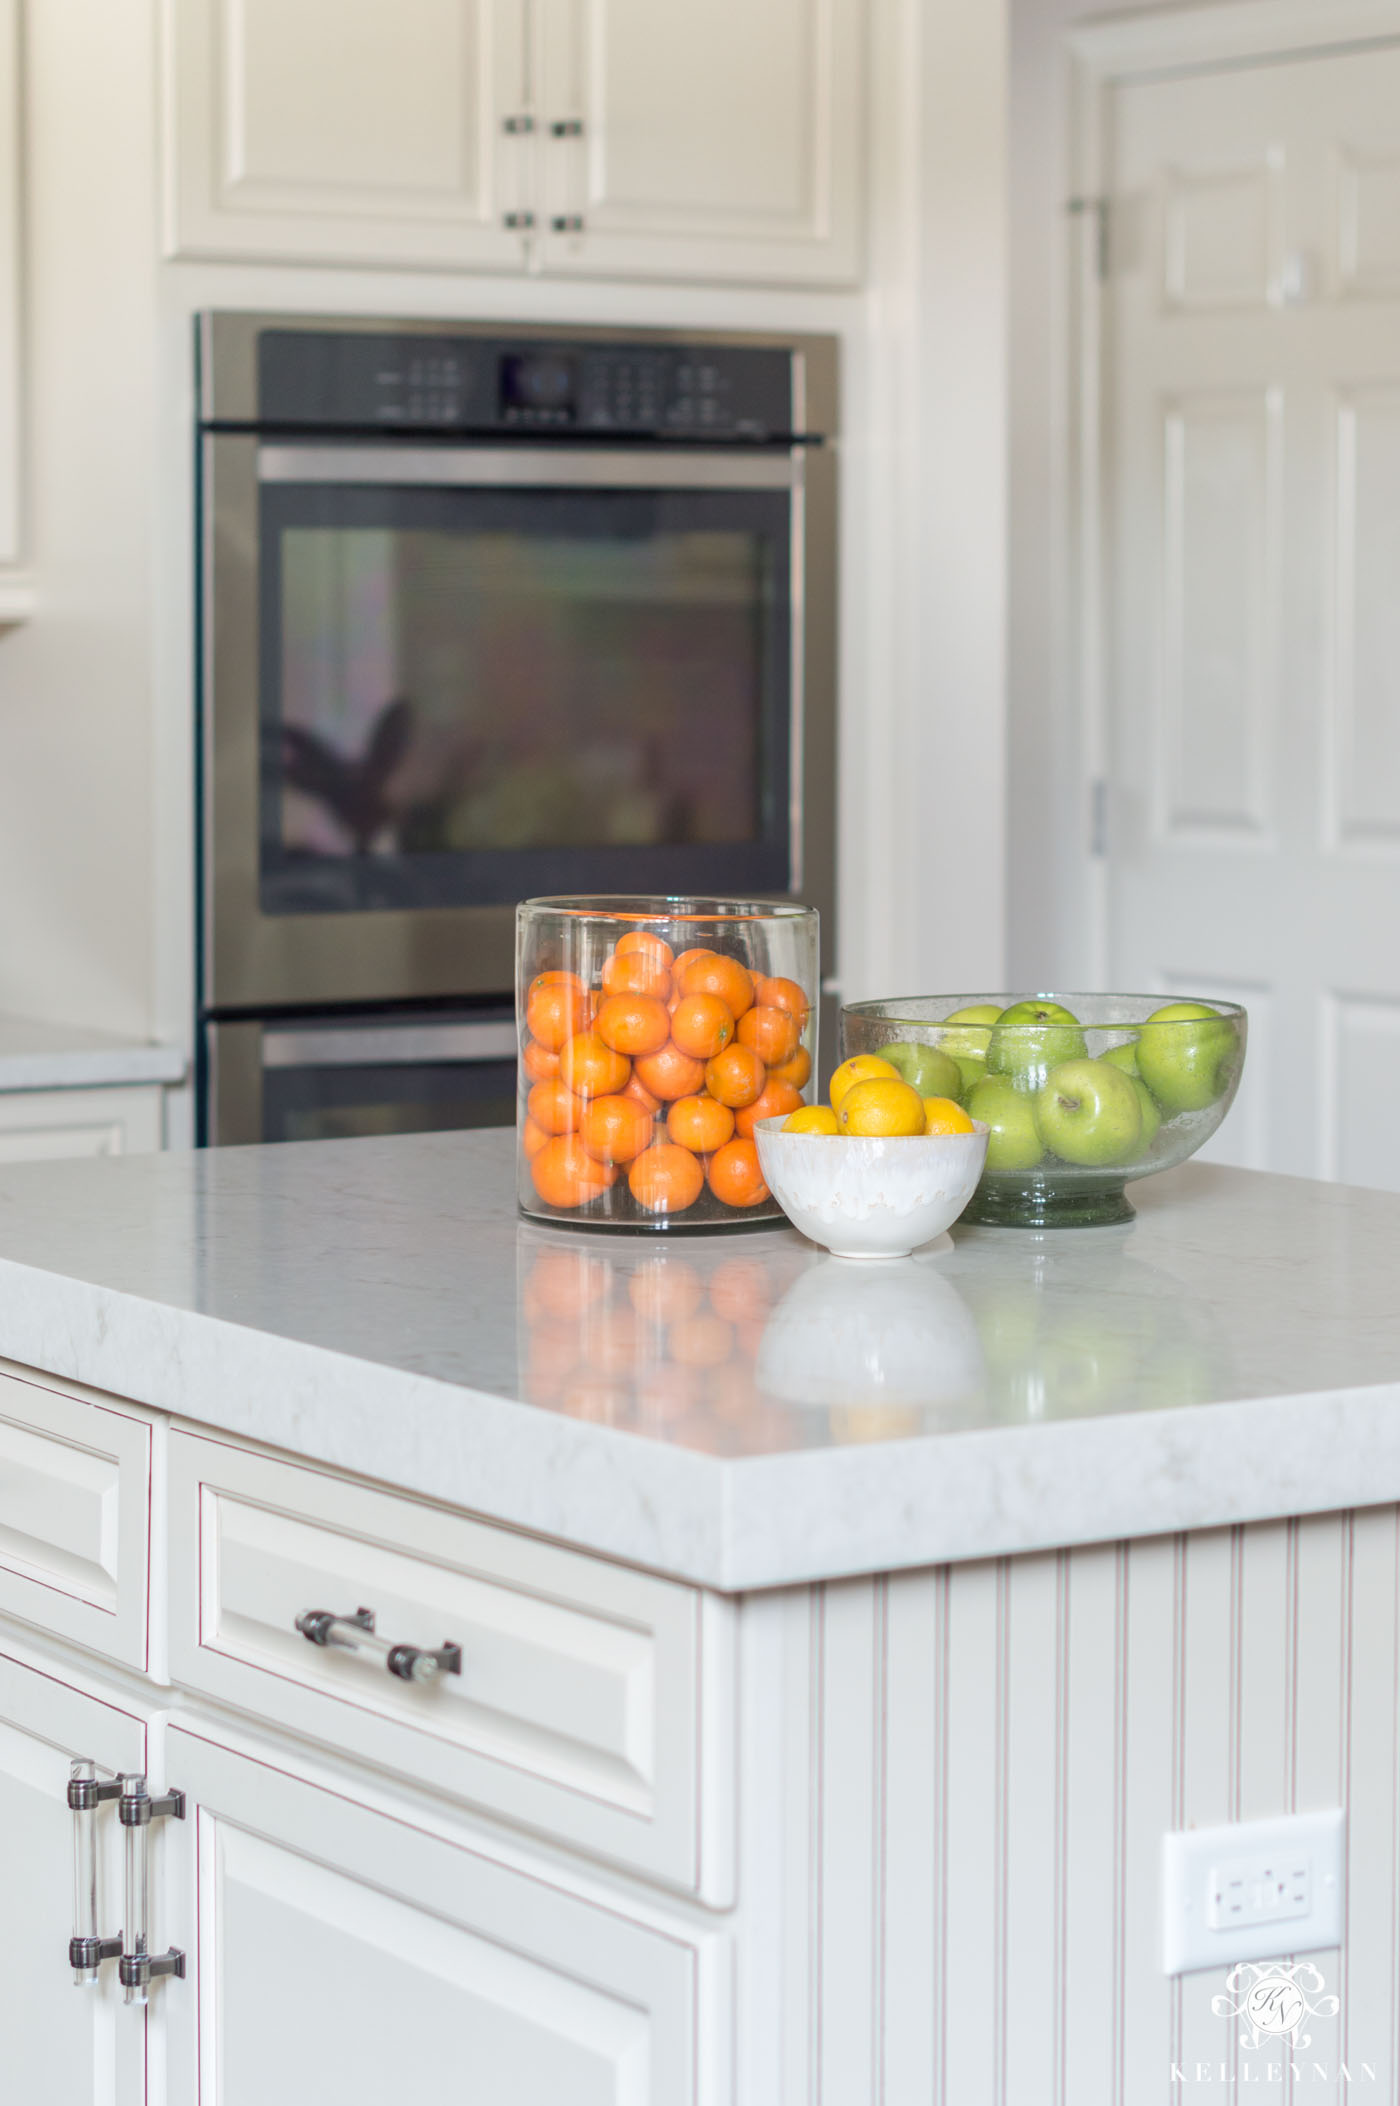 Kitchen island and countertop decor using bowls of fruit